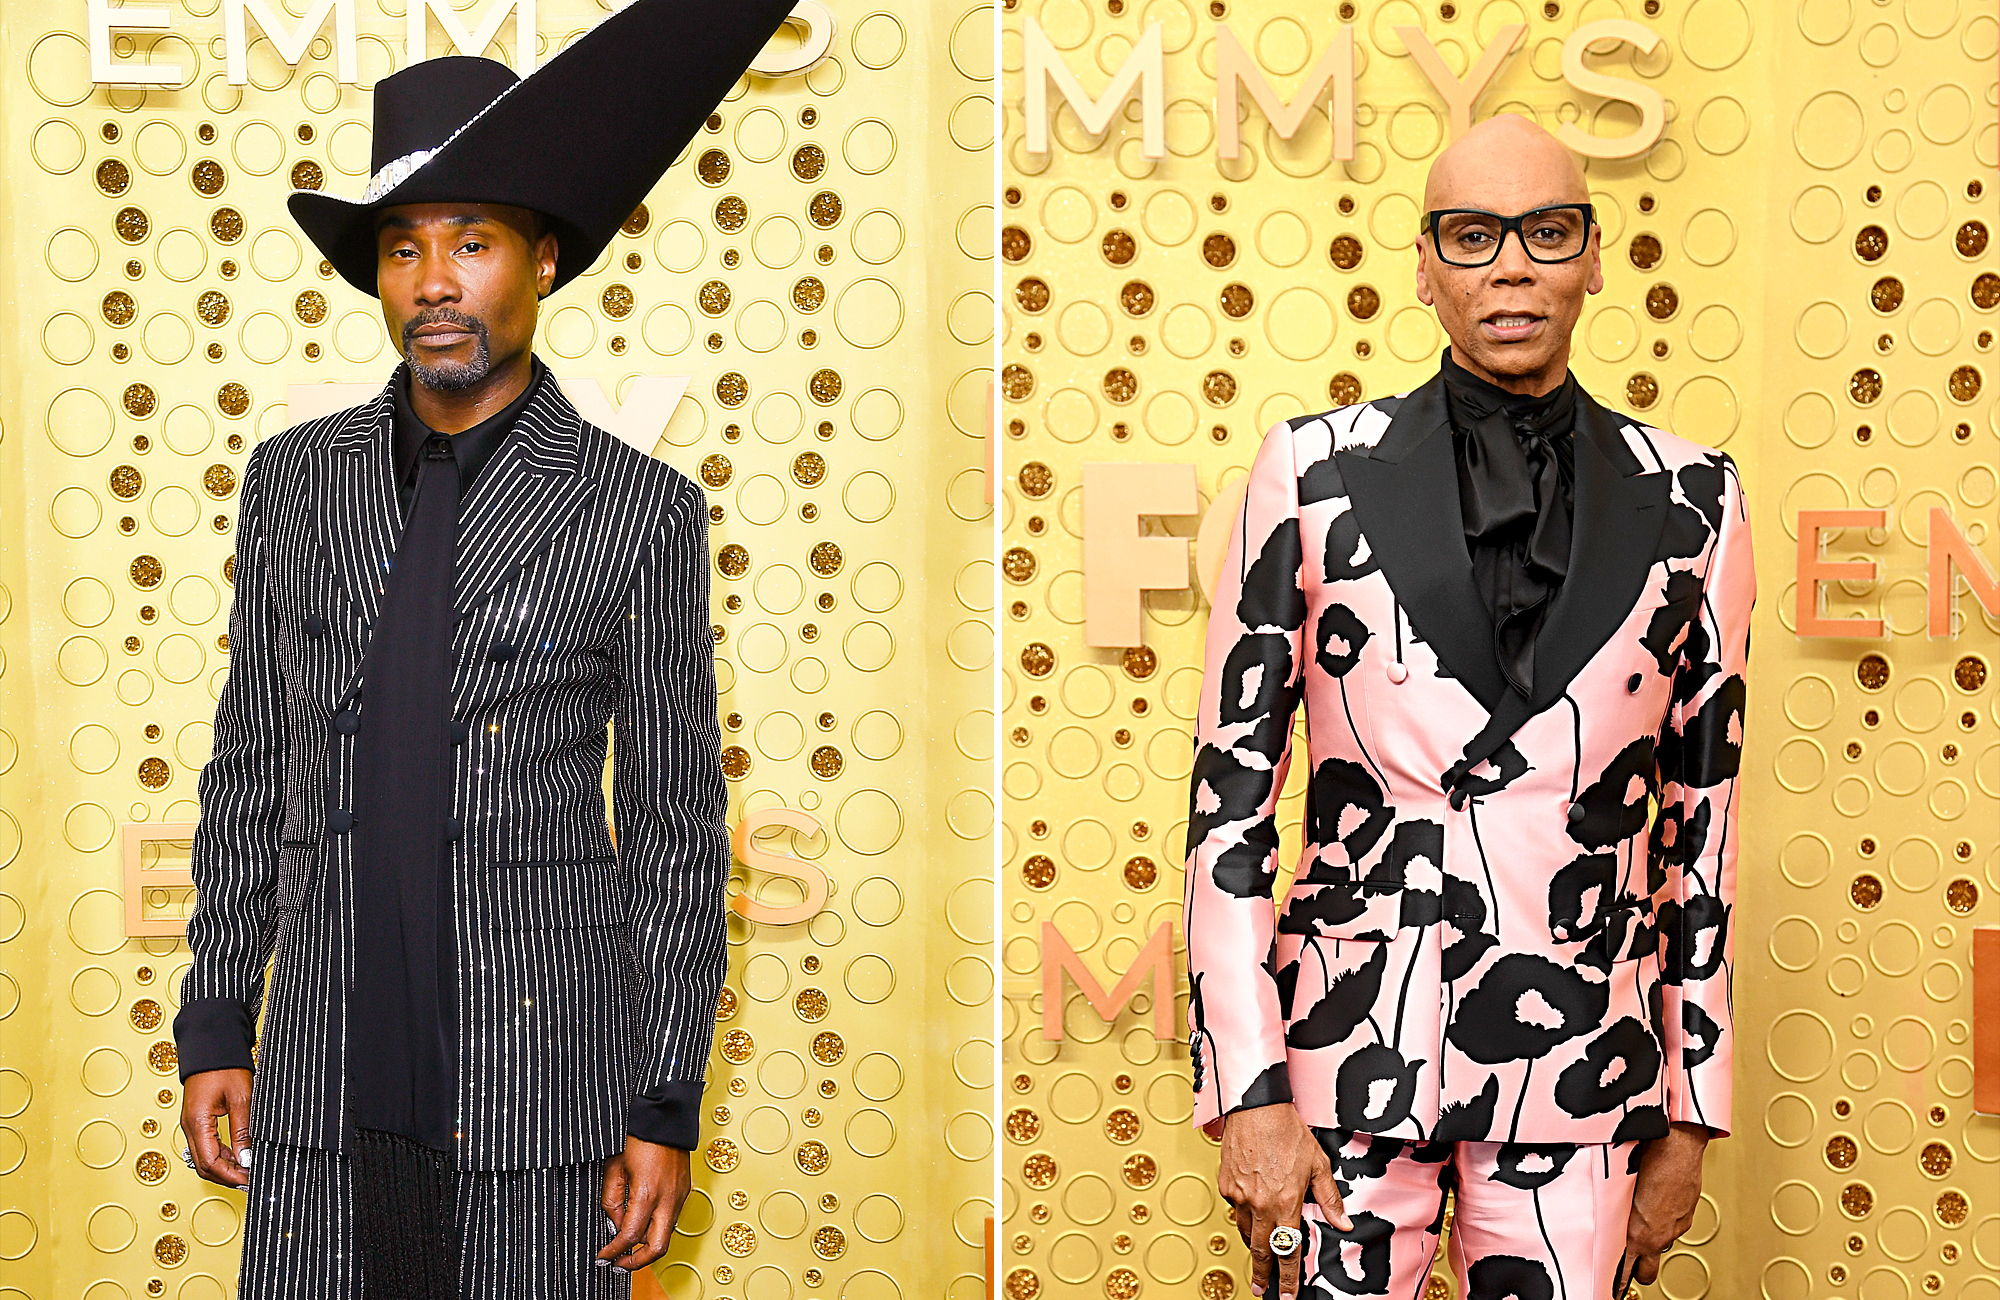 Billy Porter and Rupaul